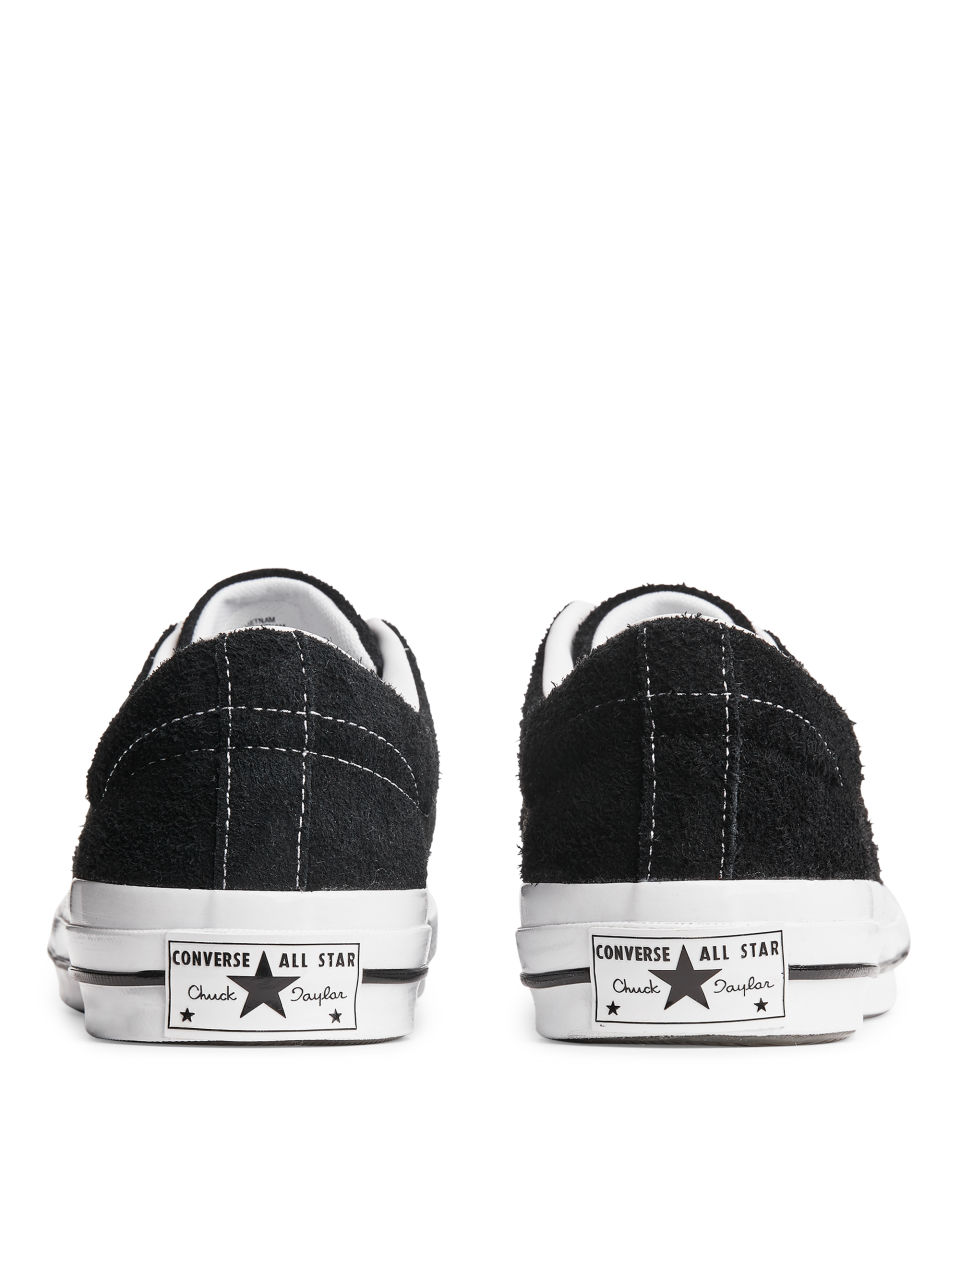 Side image of Arket converse one star low in black